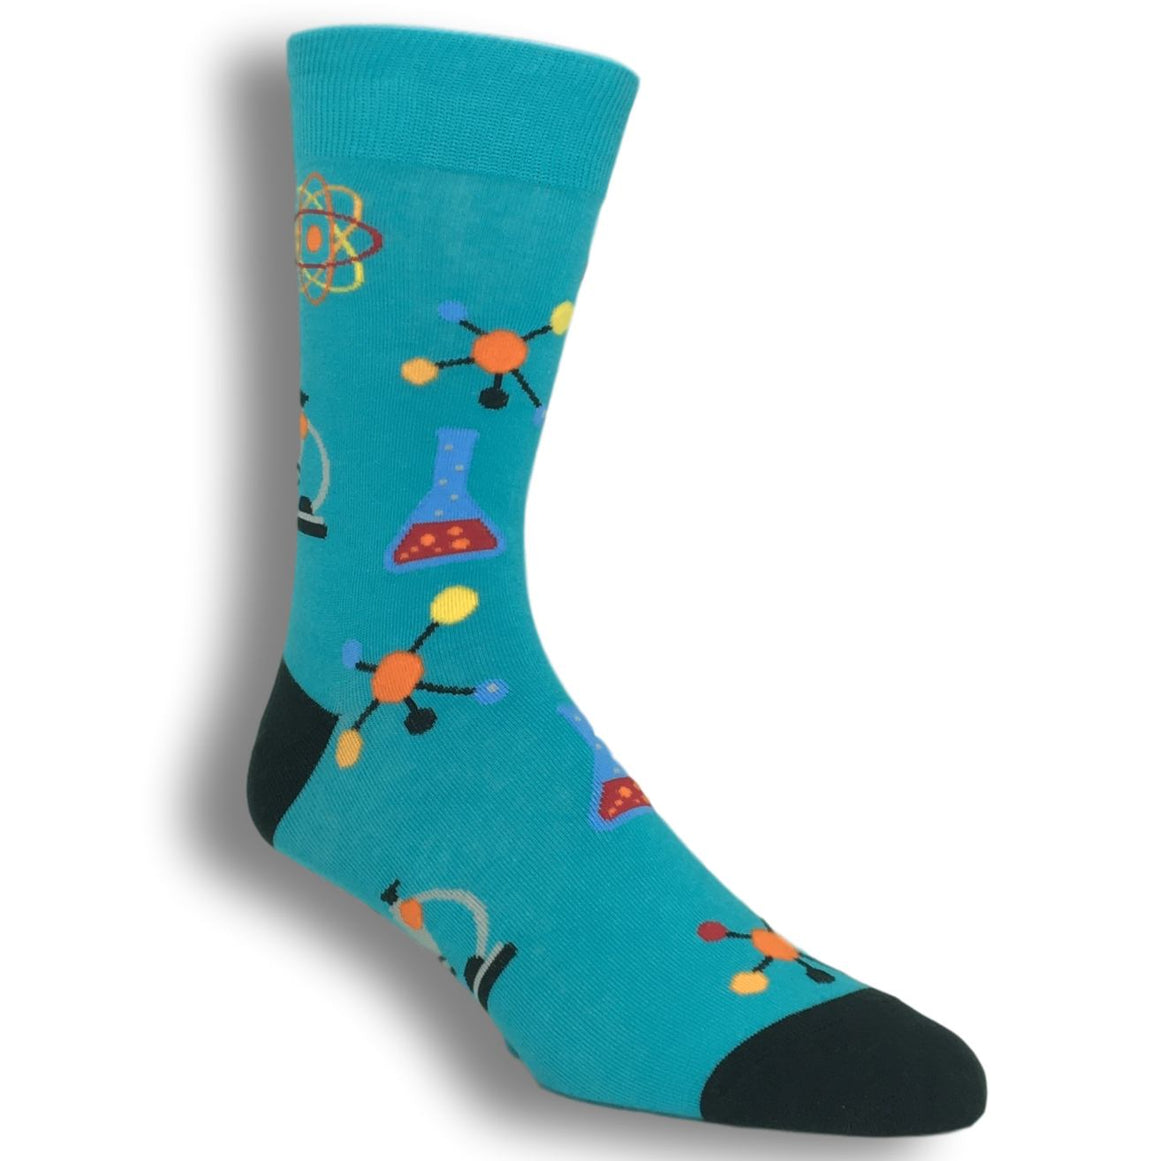 Science Socks by Good Luck Sock - The Sock Spot